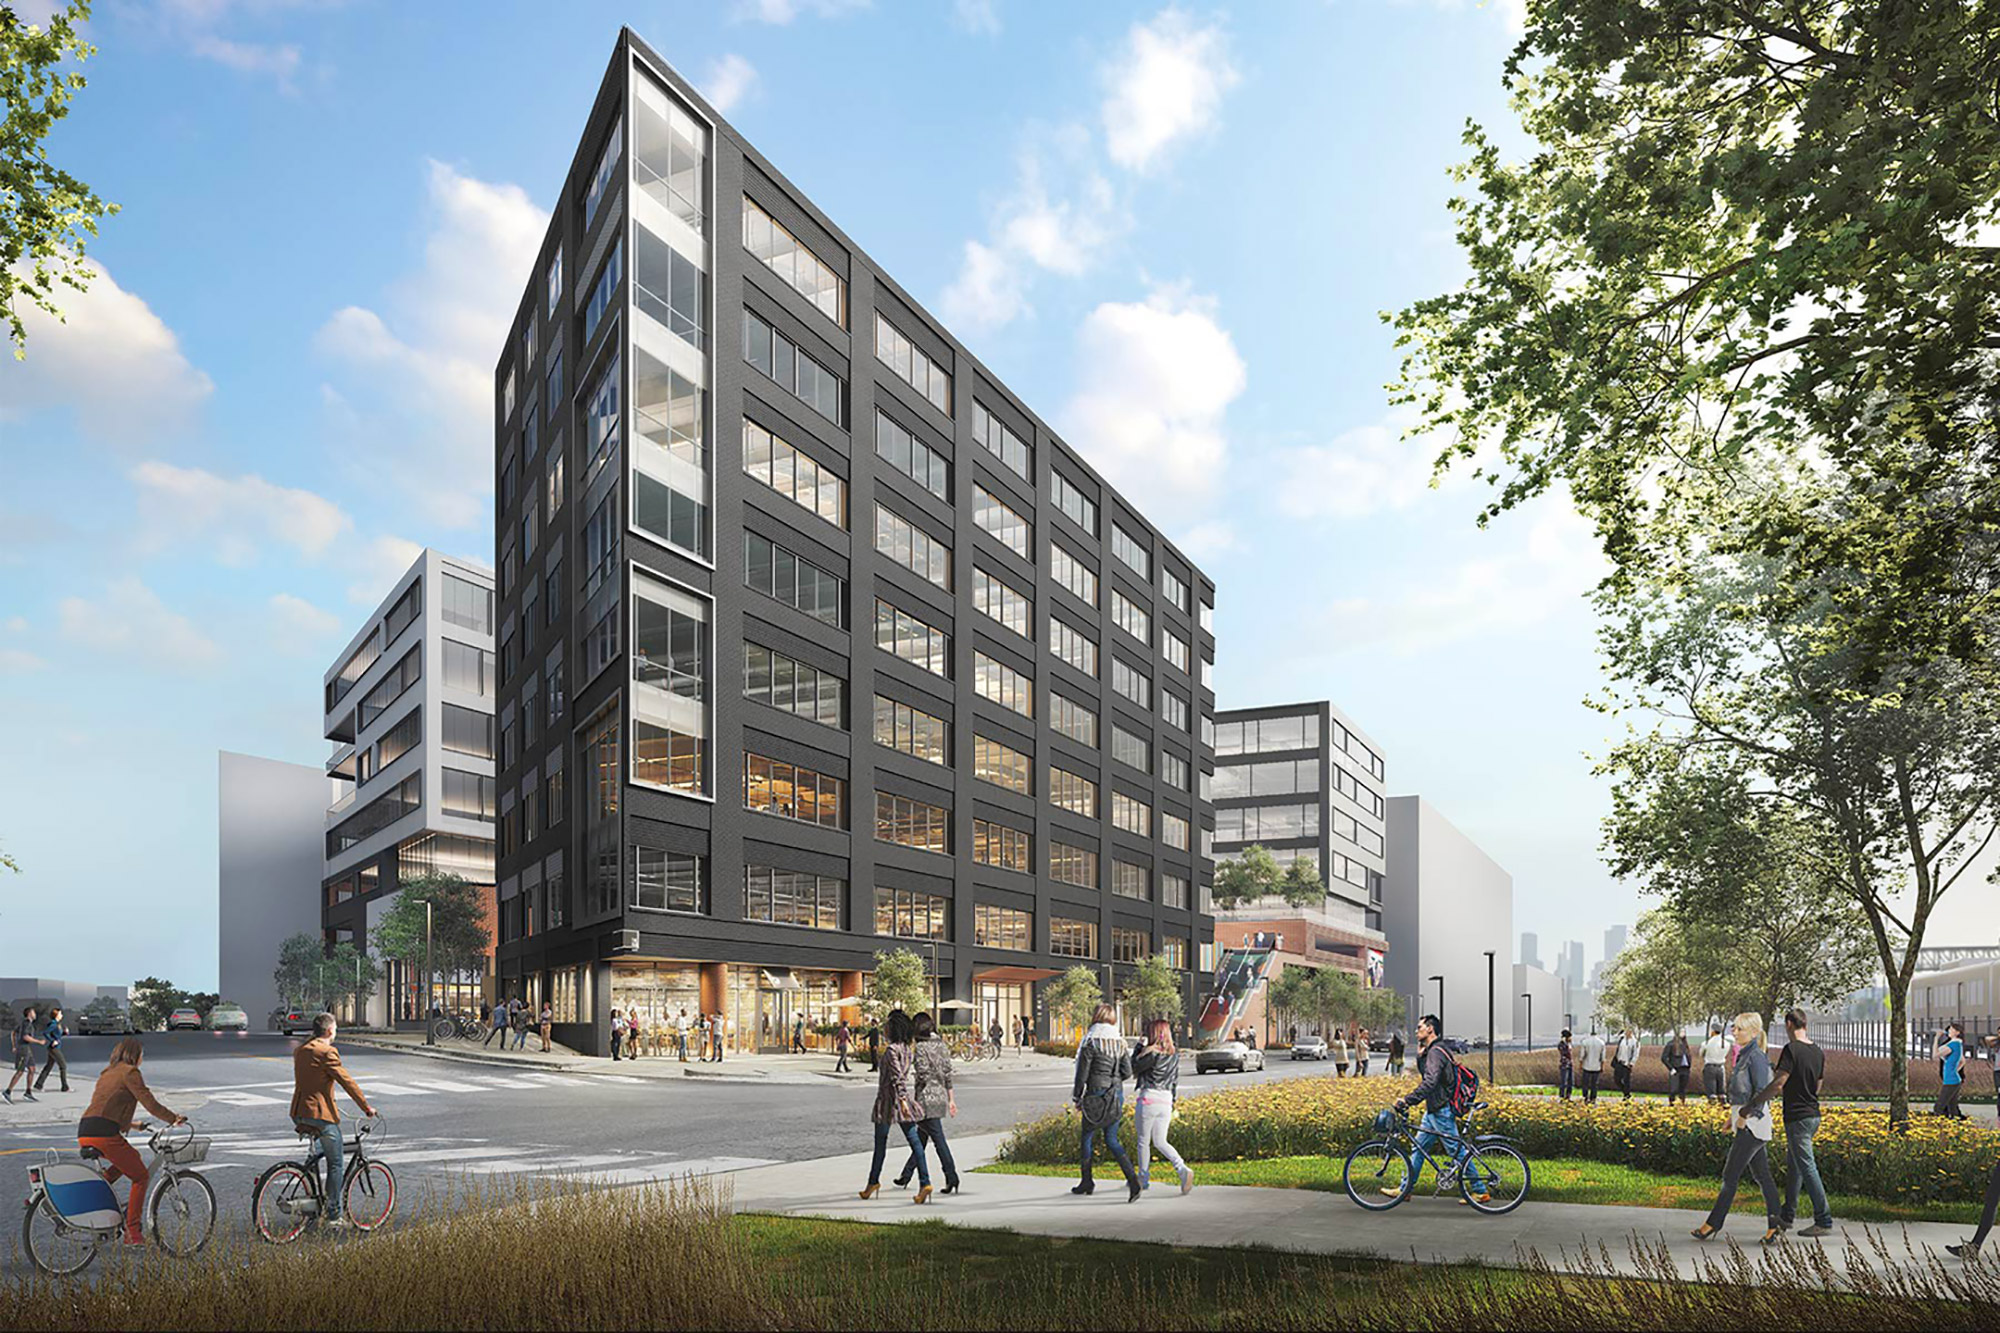 Rendering of HUB North, courtesy of Gensler